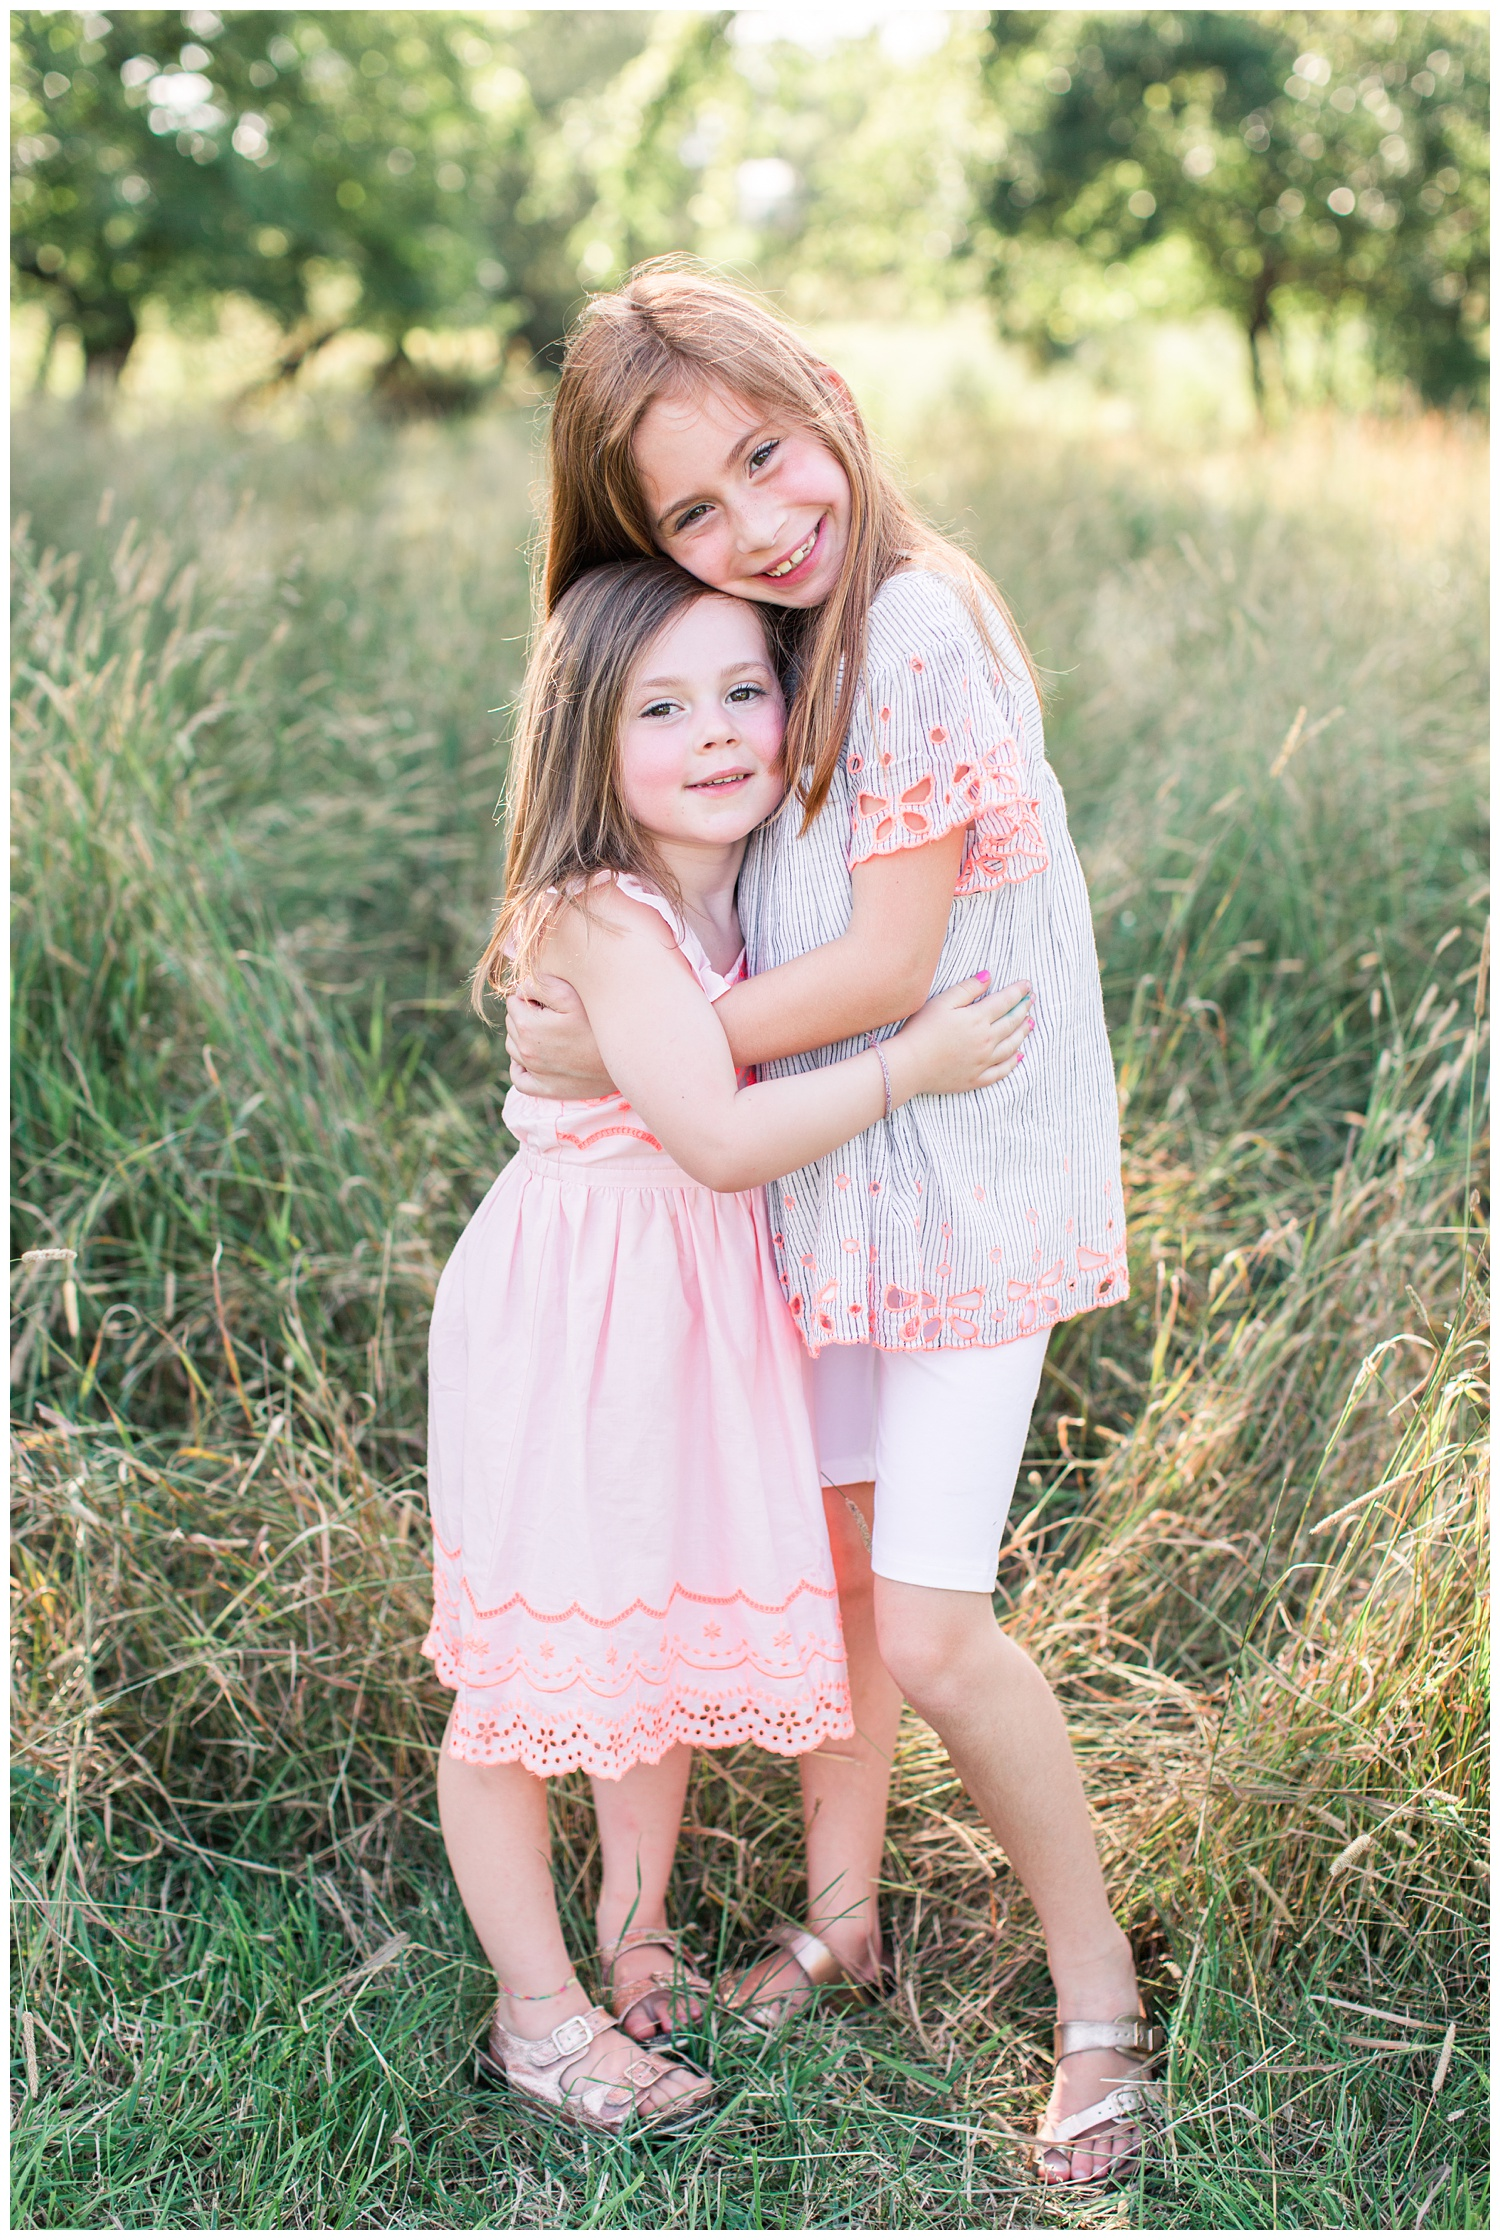 Sisters embrace in a grassy field in Iowa | CB Studio